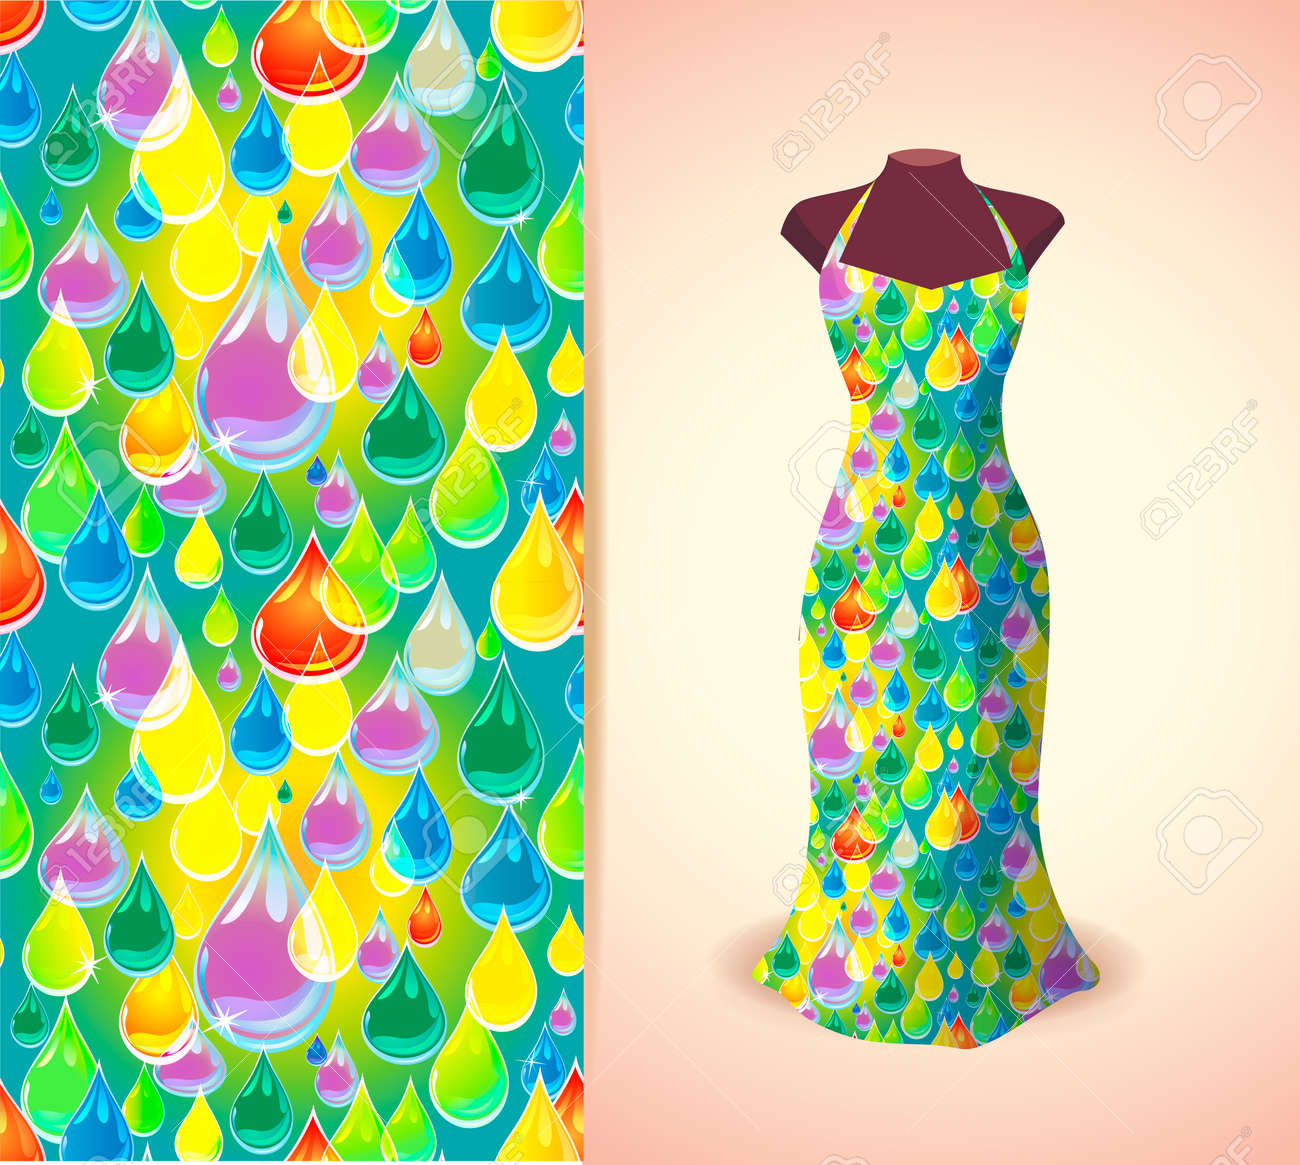 Vector Fashion Illustration Women S Dress On A Dummy Seamless Royalty Free Cliparts Vectors And Stock Illustration Image 59865990